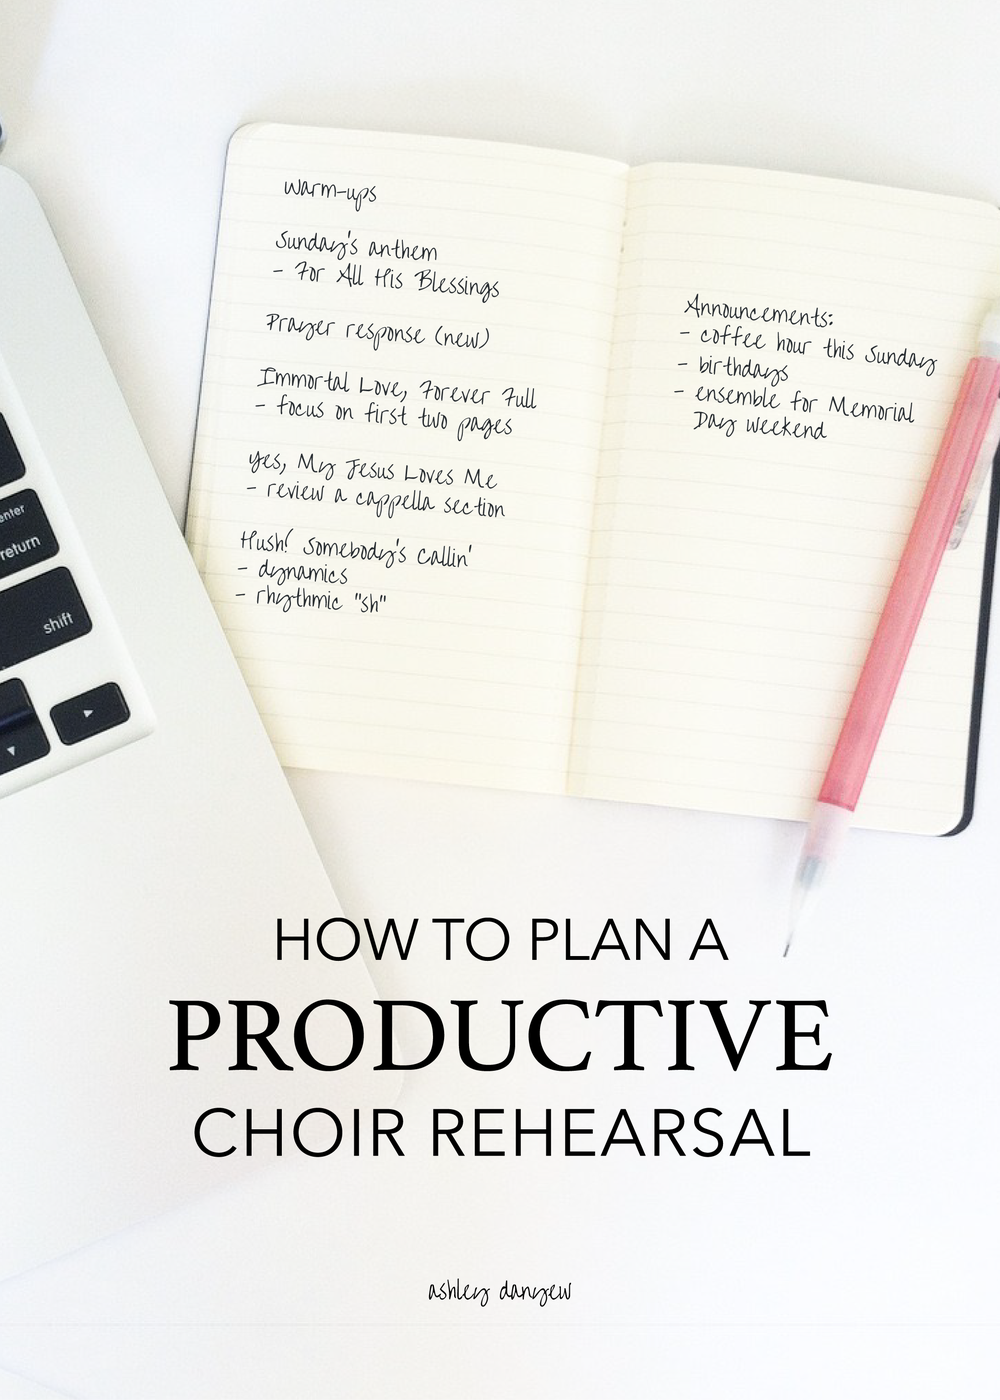 How-to-Plan-a-Productive-Choir-Rehearsal-01.png